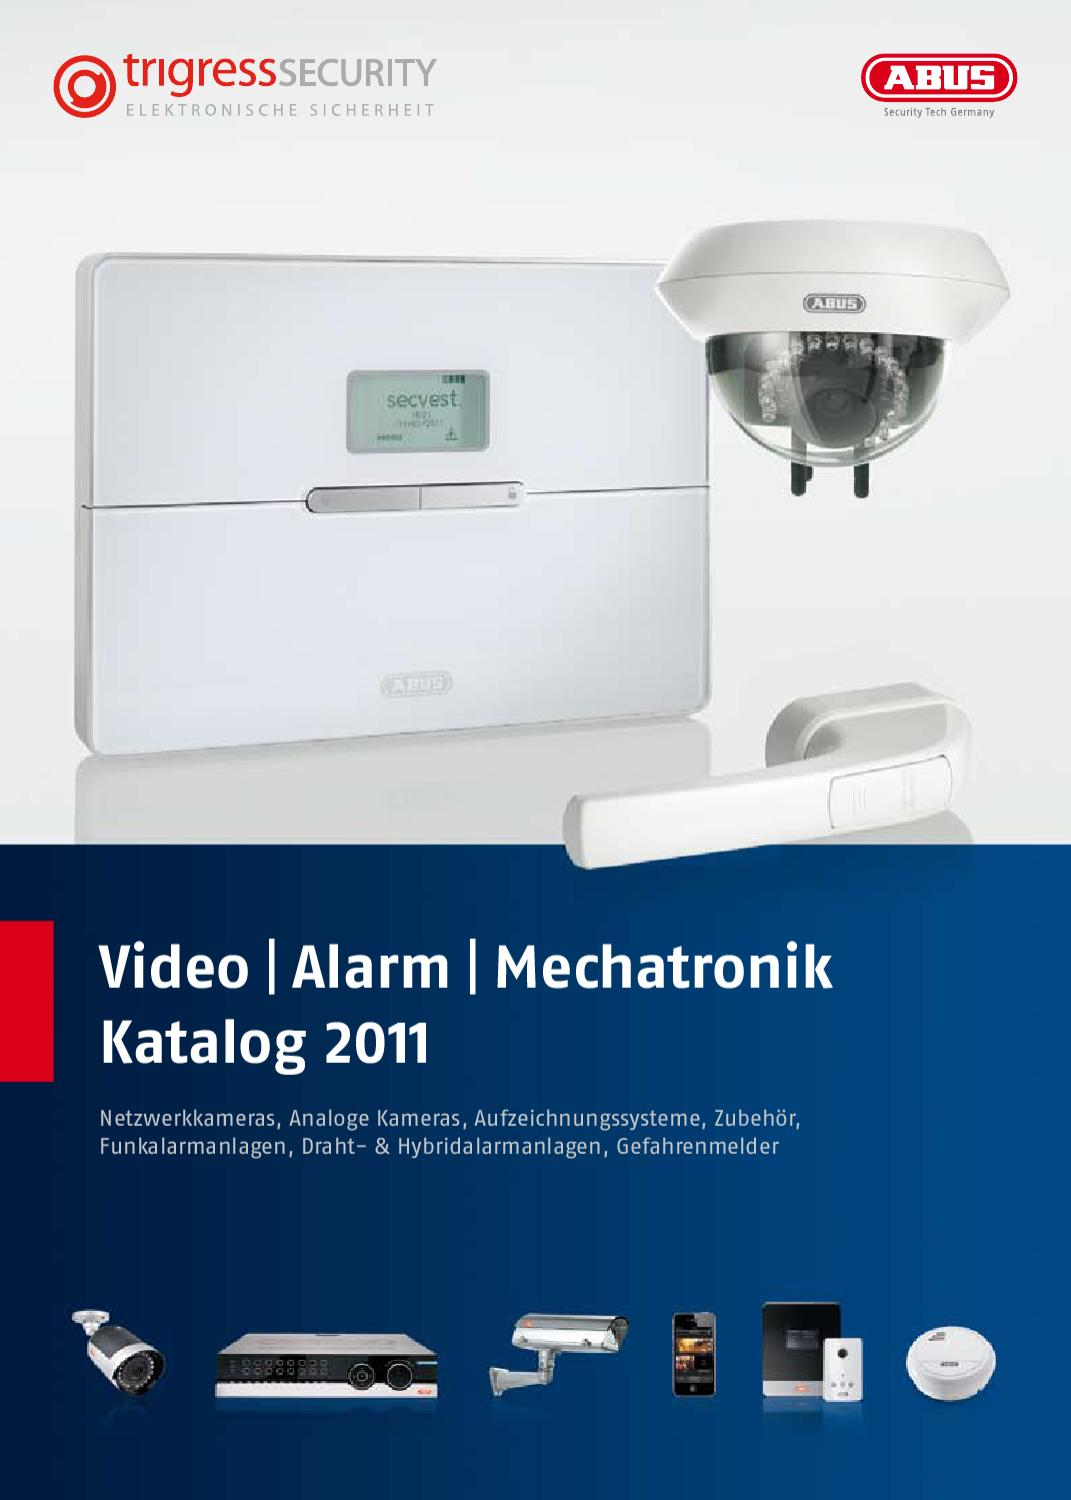 Video Alarm Mechatronik Katalog 2011 by TRIGRESS Security AG - issuu